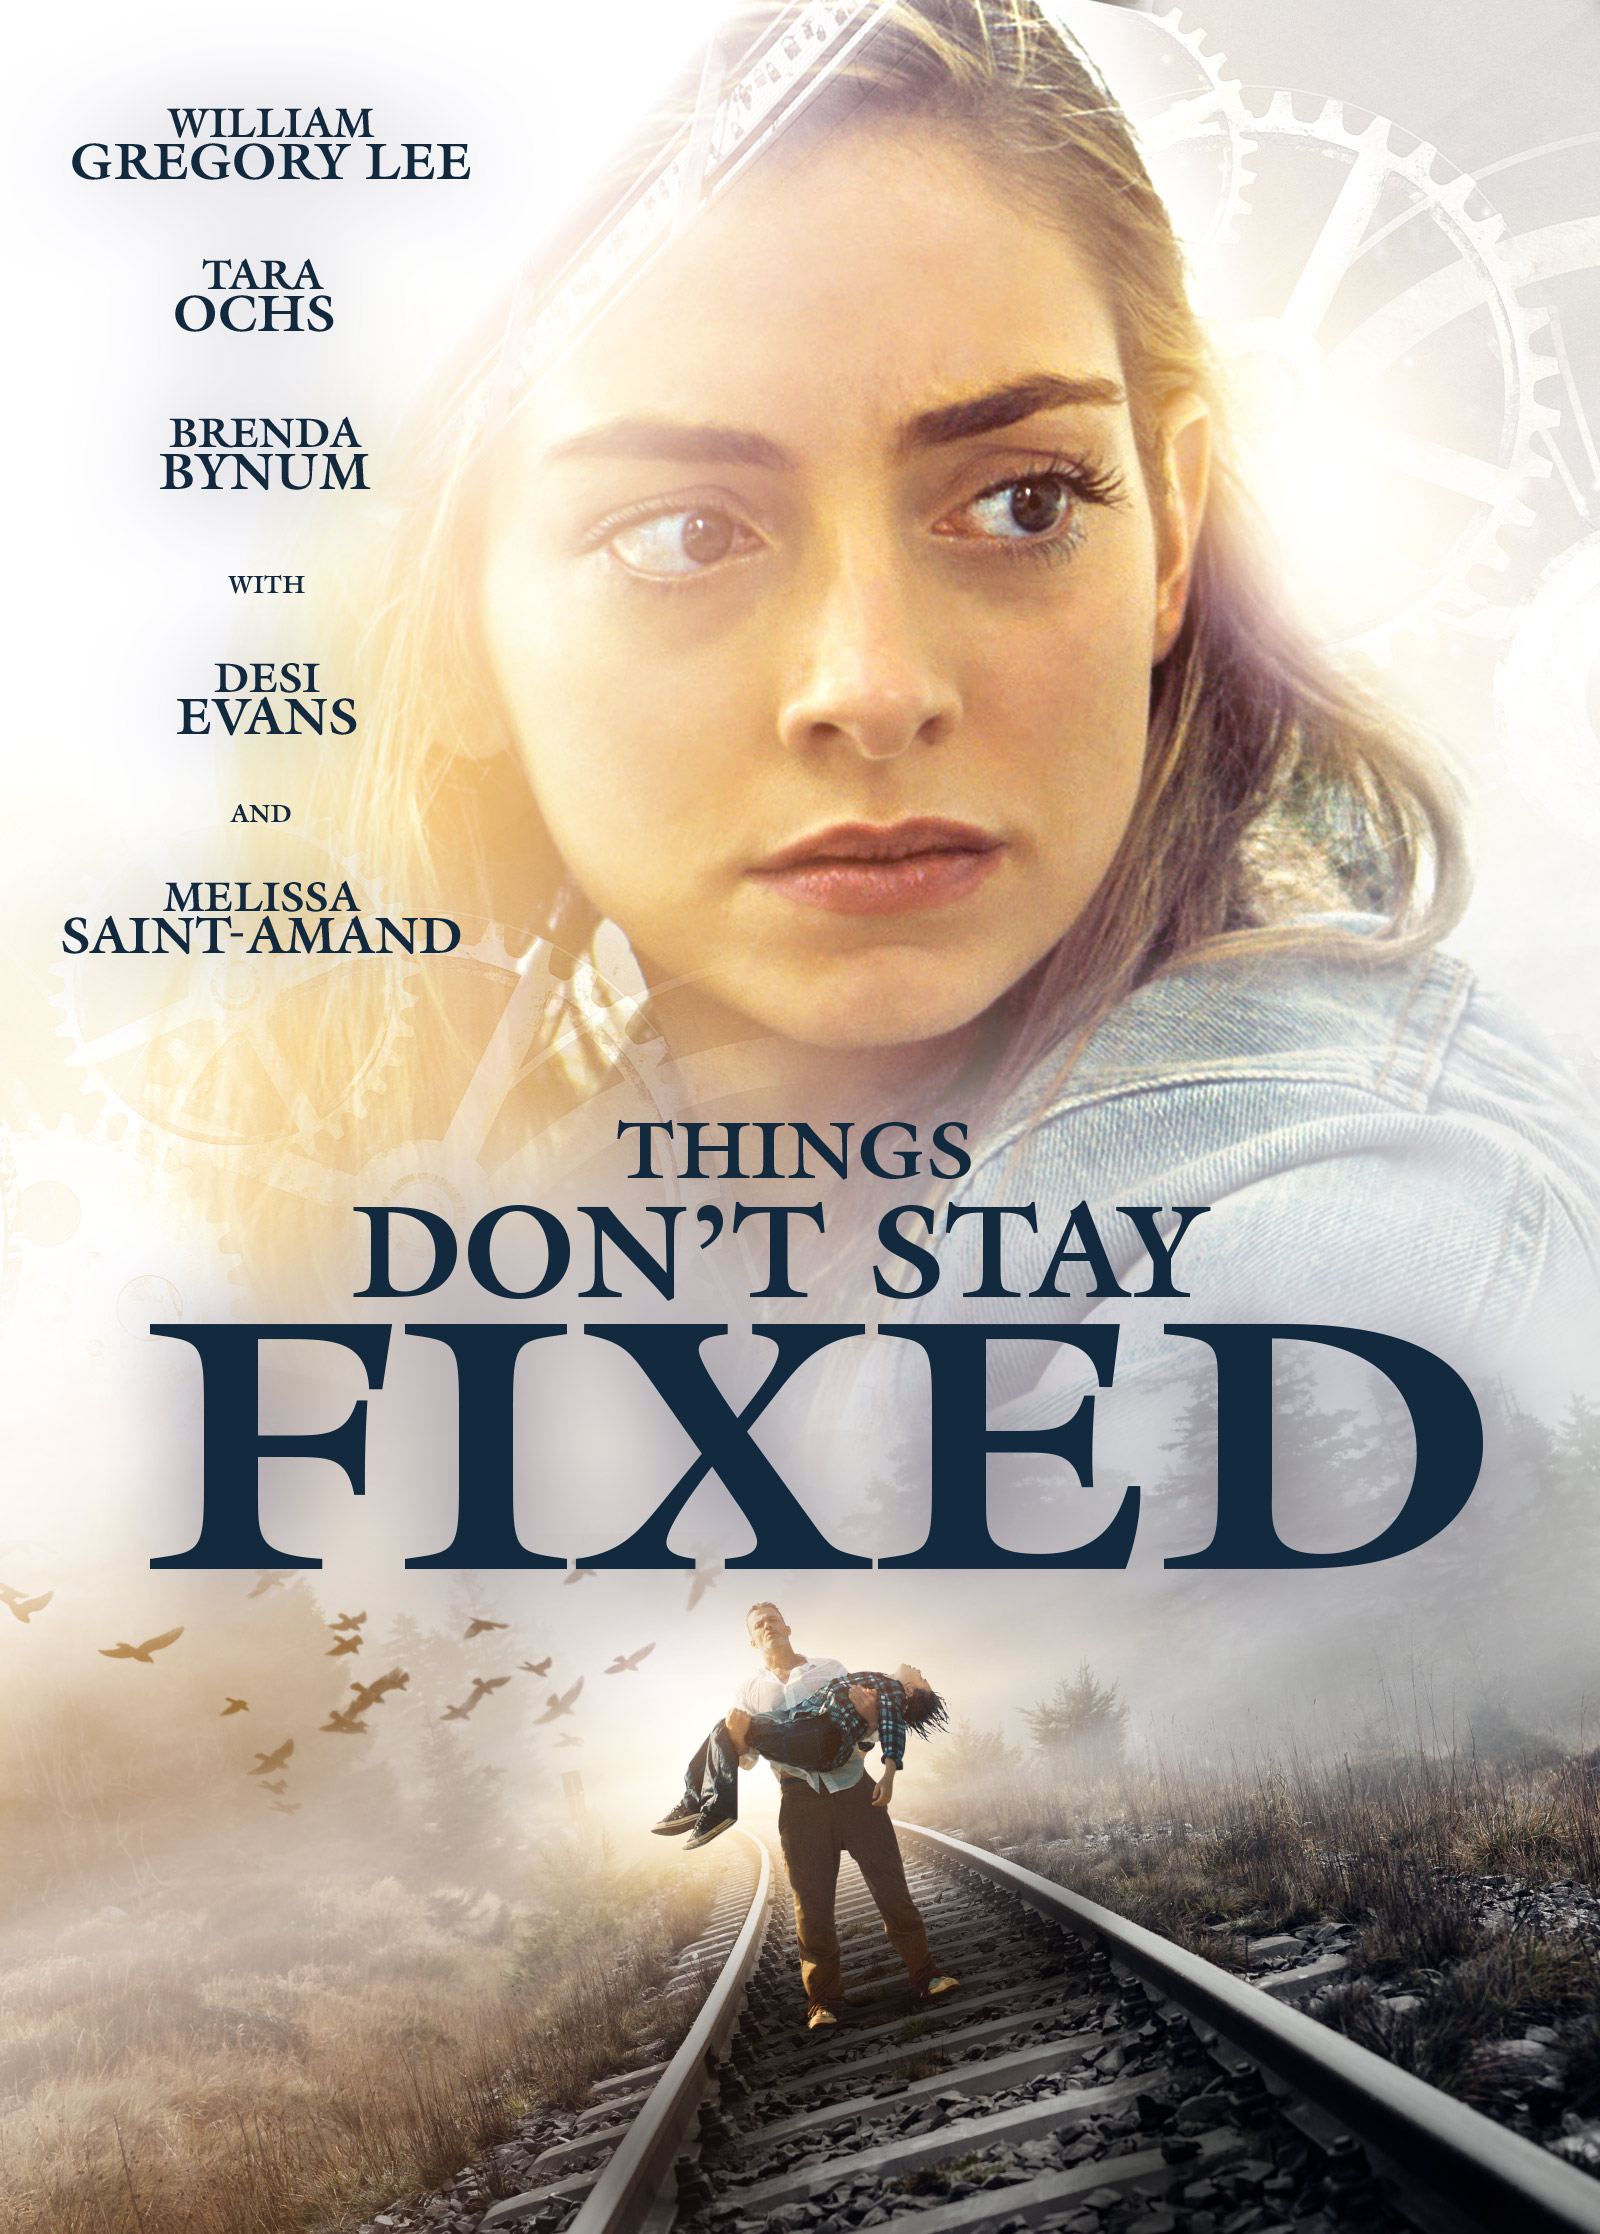 Things Dont Stay Fixed (2021) Dual Audio [Hindi (Voice Over) Dubbed + English] WebRip 720p [1XBET]